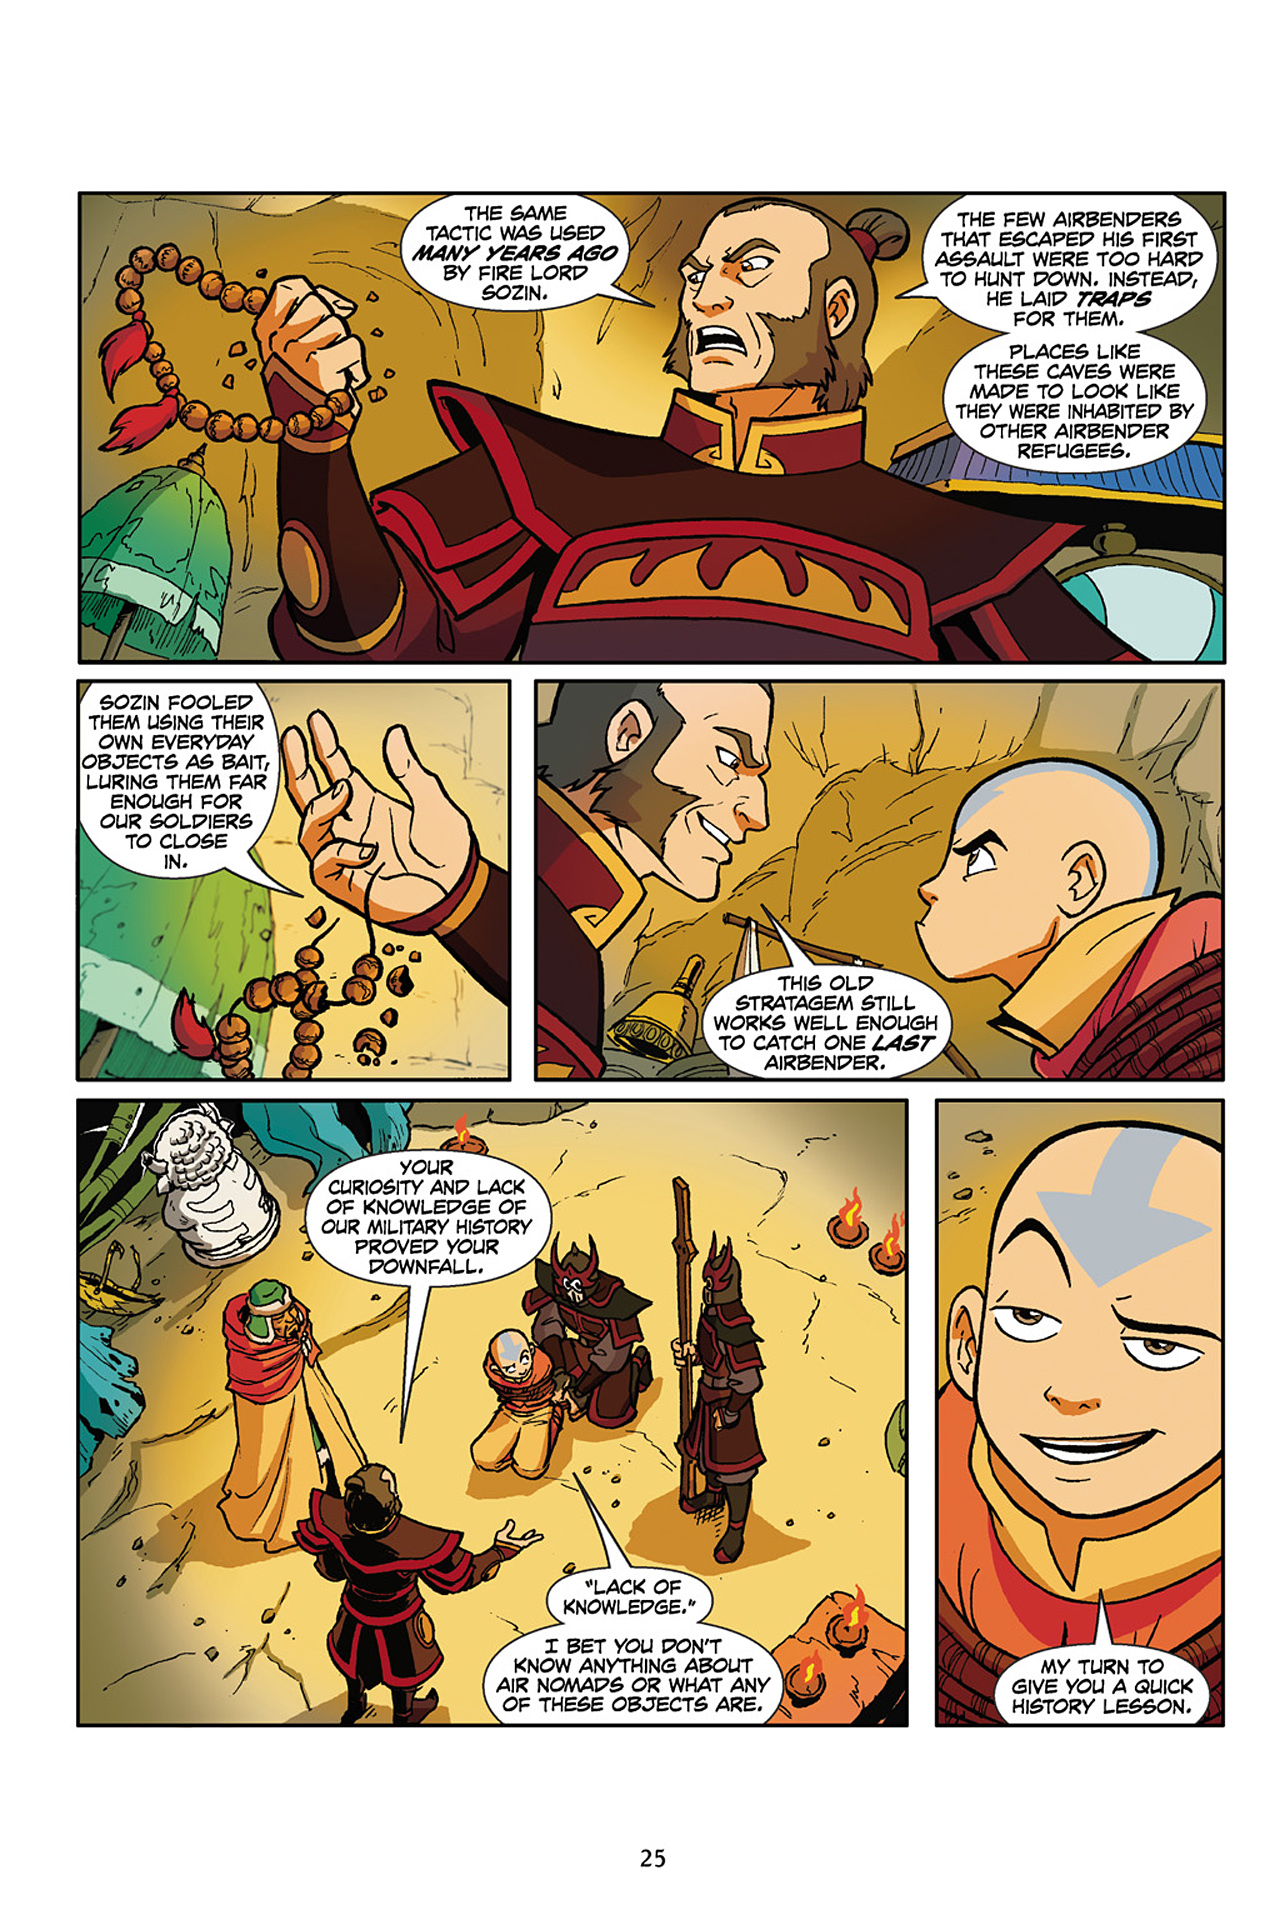 Nickelodeon Avatar: The Last Airbender - The Lost Adventures chap full pic 26